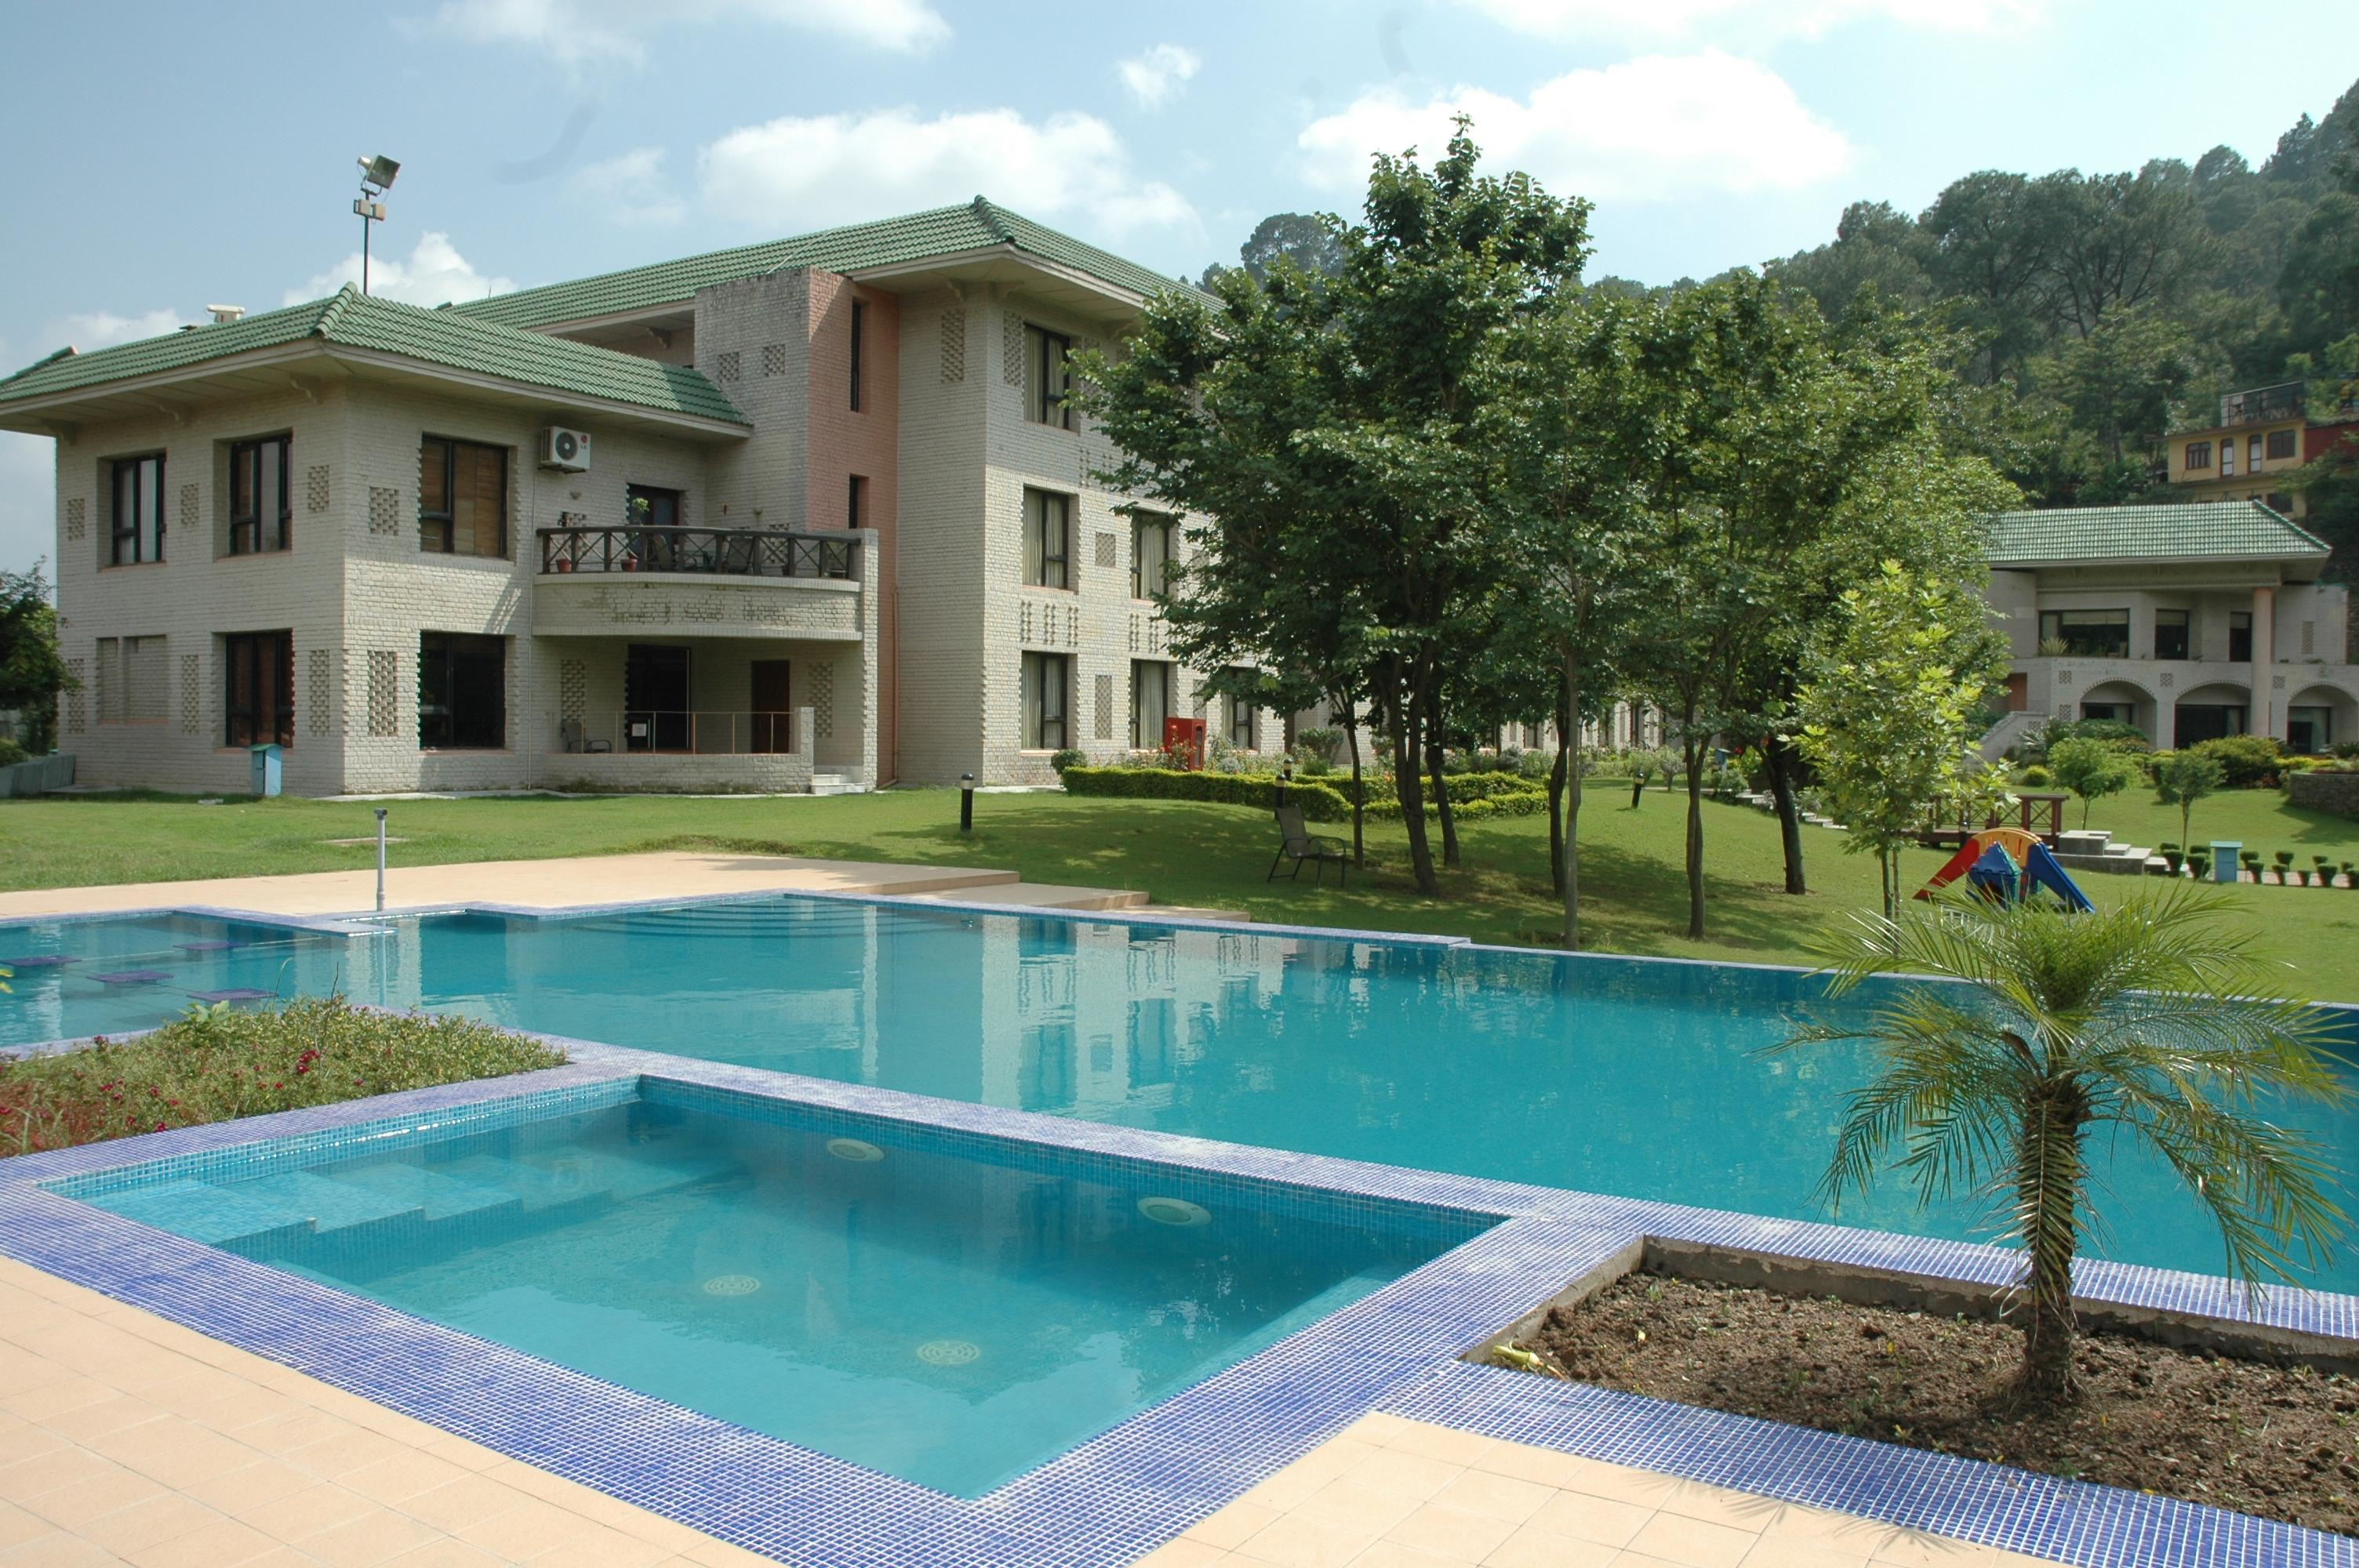 Country Inn & Suites By Carlson, Vaishno Devi, Katra